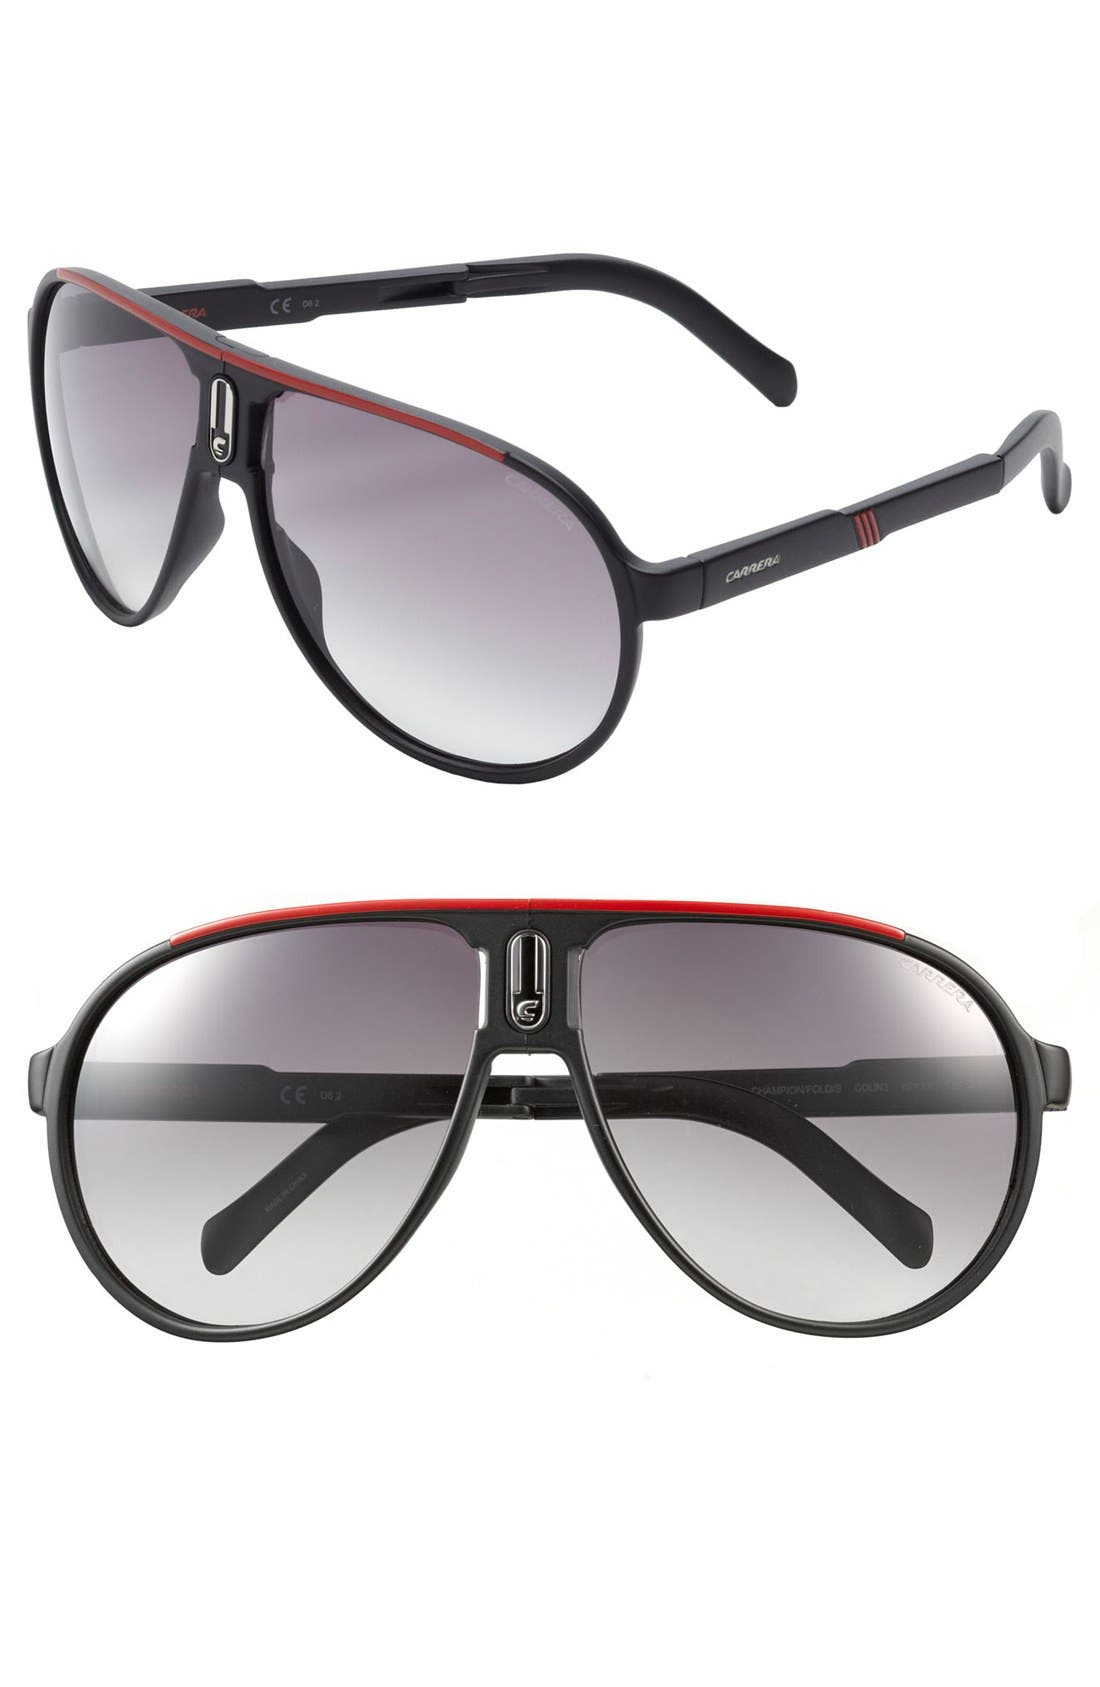 Main Image - Carrera Eyewear 'Champion' 62mm Polarized Folding Sunglasses